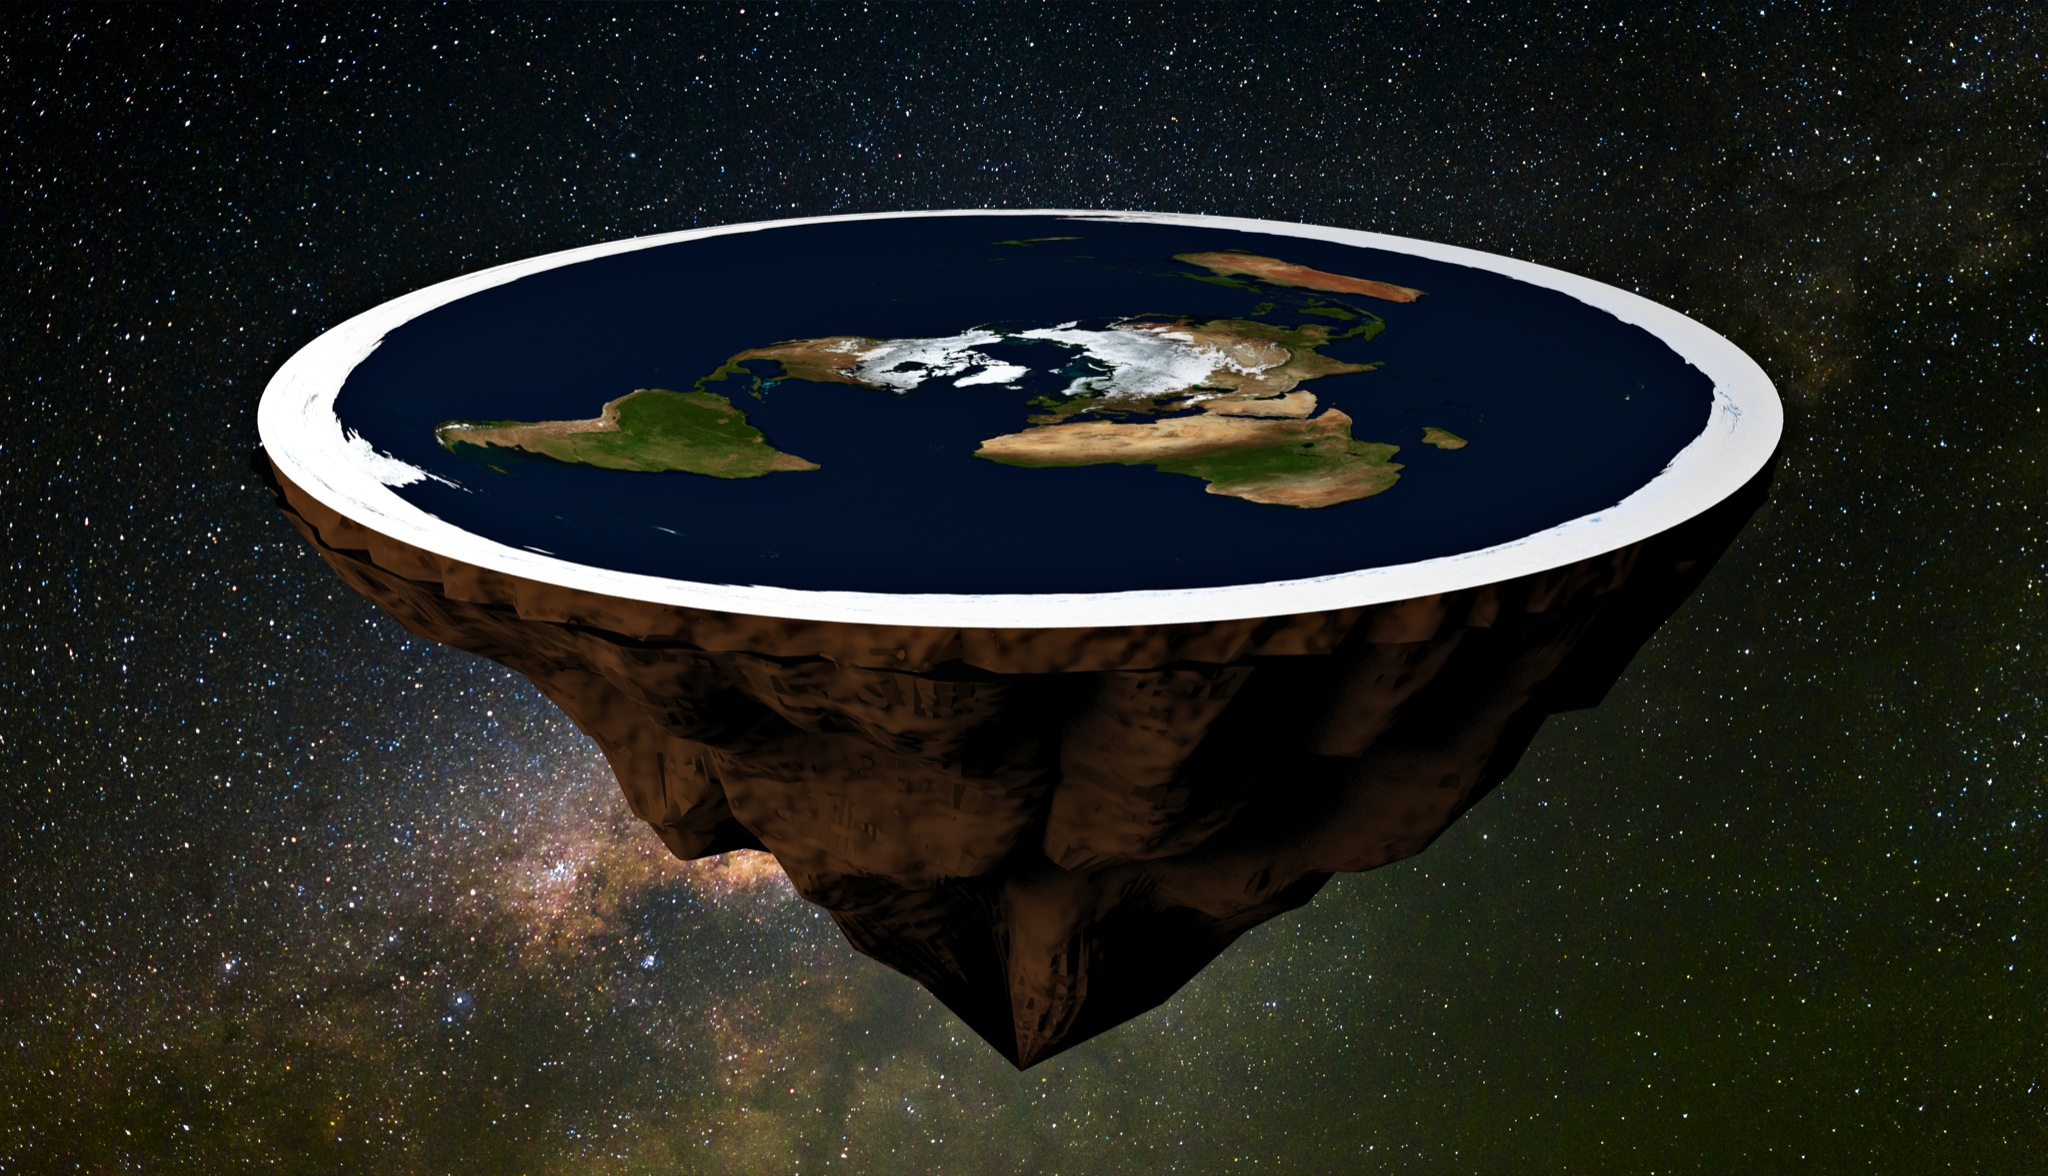 11d8a7b3db1 Conspiracy theorist  You can t fall off flat Earth edge due to  Pac-Man  effect  - SFGate